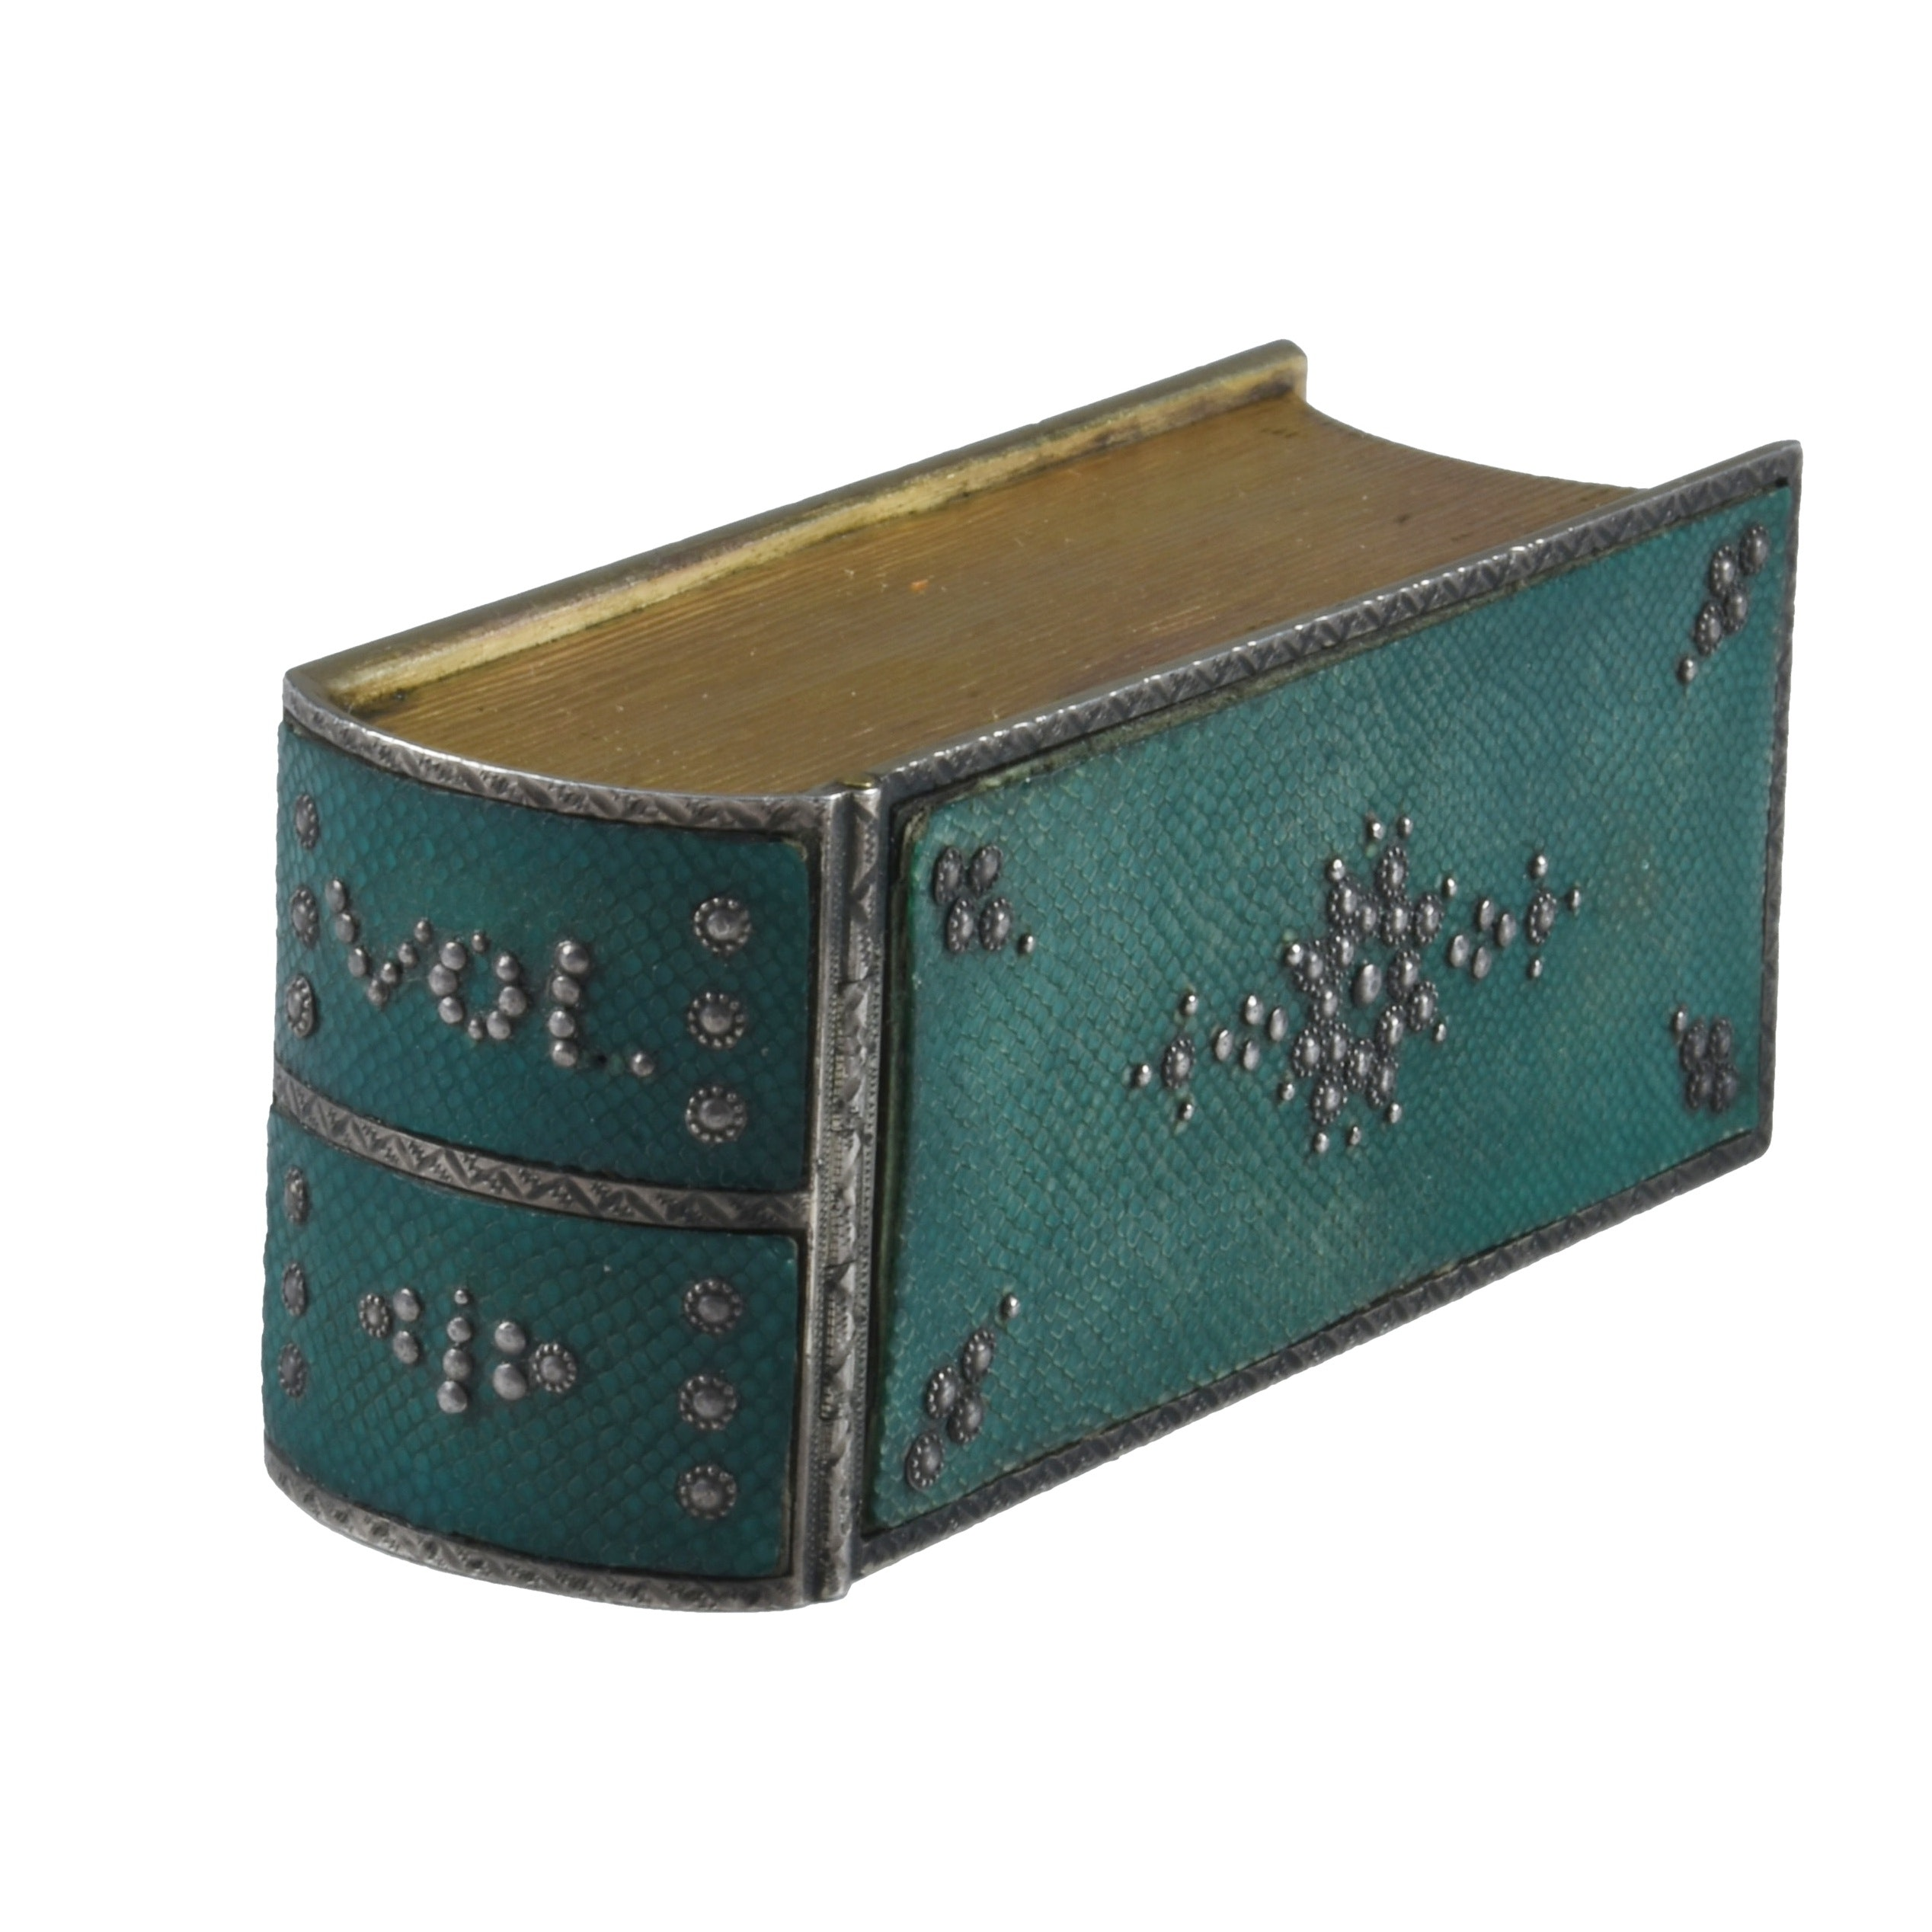 18th c. French Shagreen Traveling Writing Necessaire in Book Form